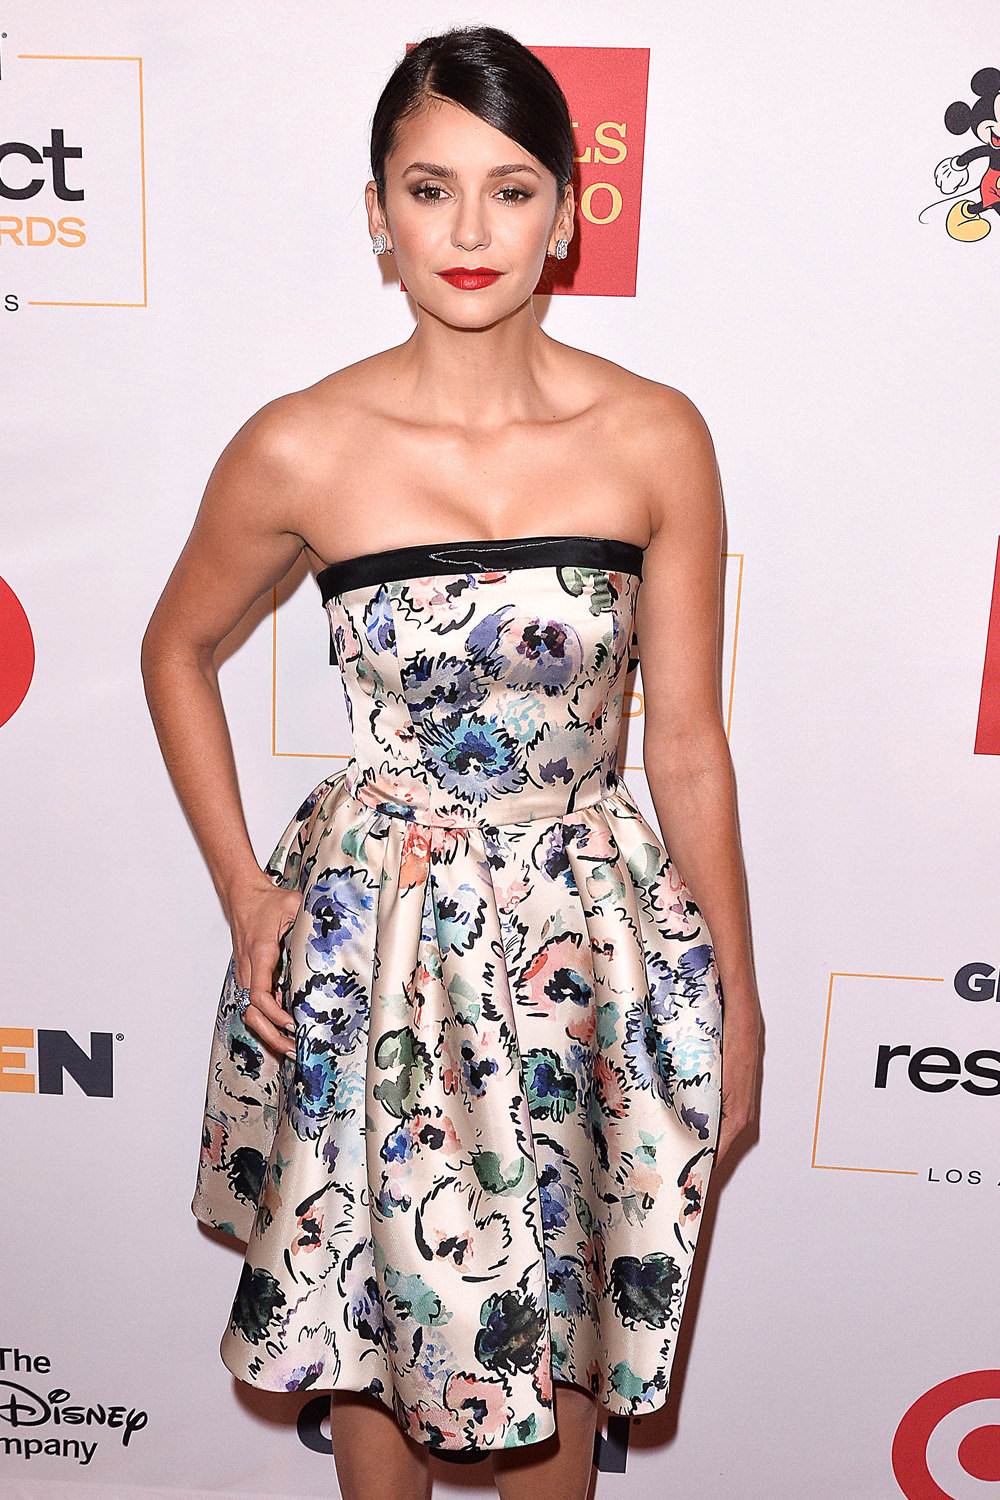 nina-dobrev-2016-glsen-respect-awards-red-carpet-fashion-girogio-armani-tom-lorenzo-site-1